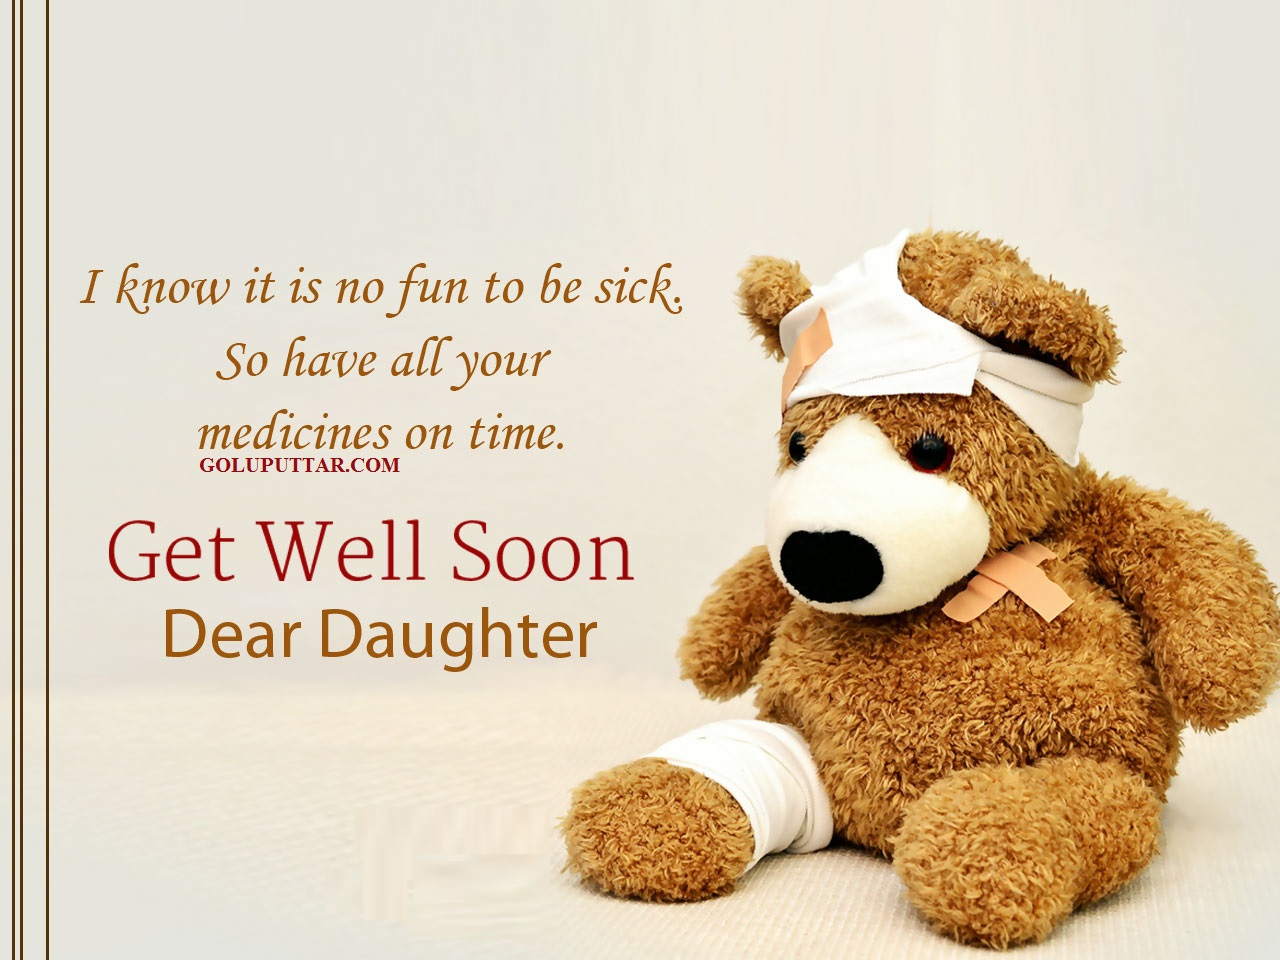 get well soon quotes and sayings for friends - 058